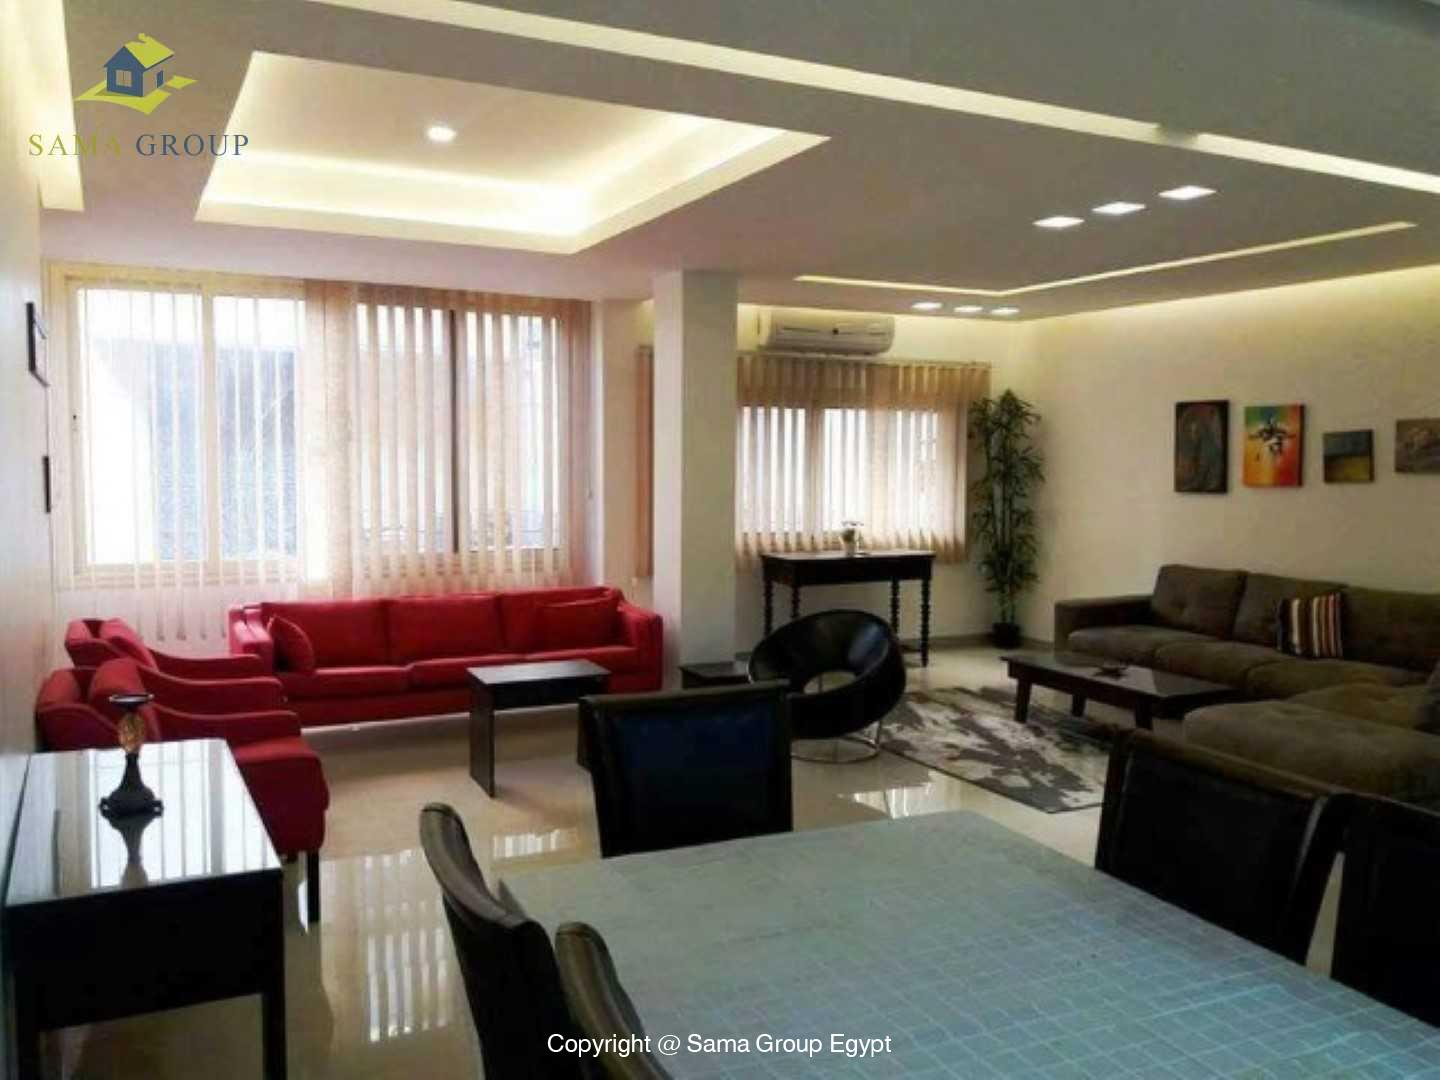 Brand New Apartment For Rent In Maadi Sarayat,Modern Furnished,Apartment NO #6